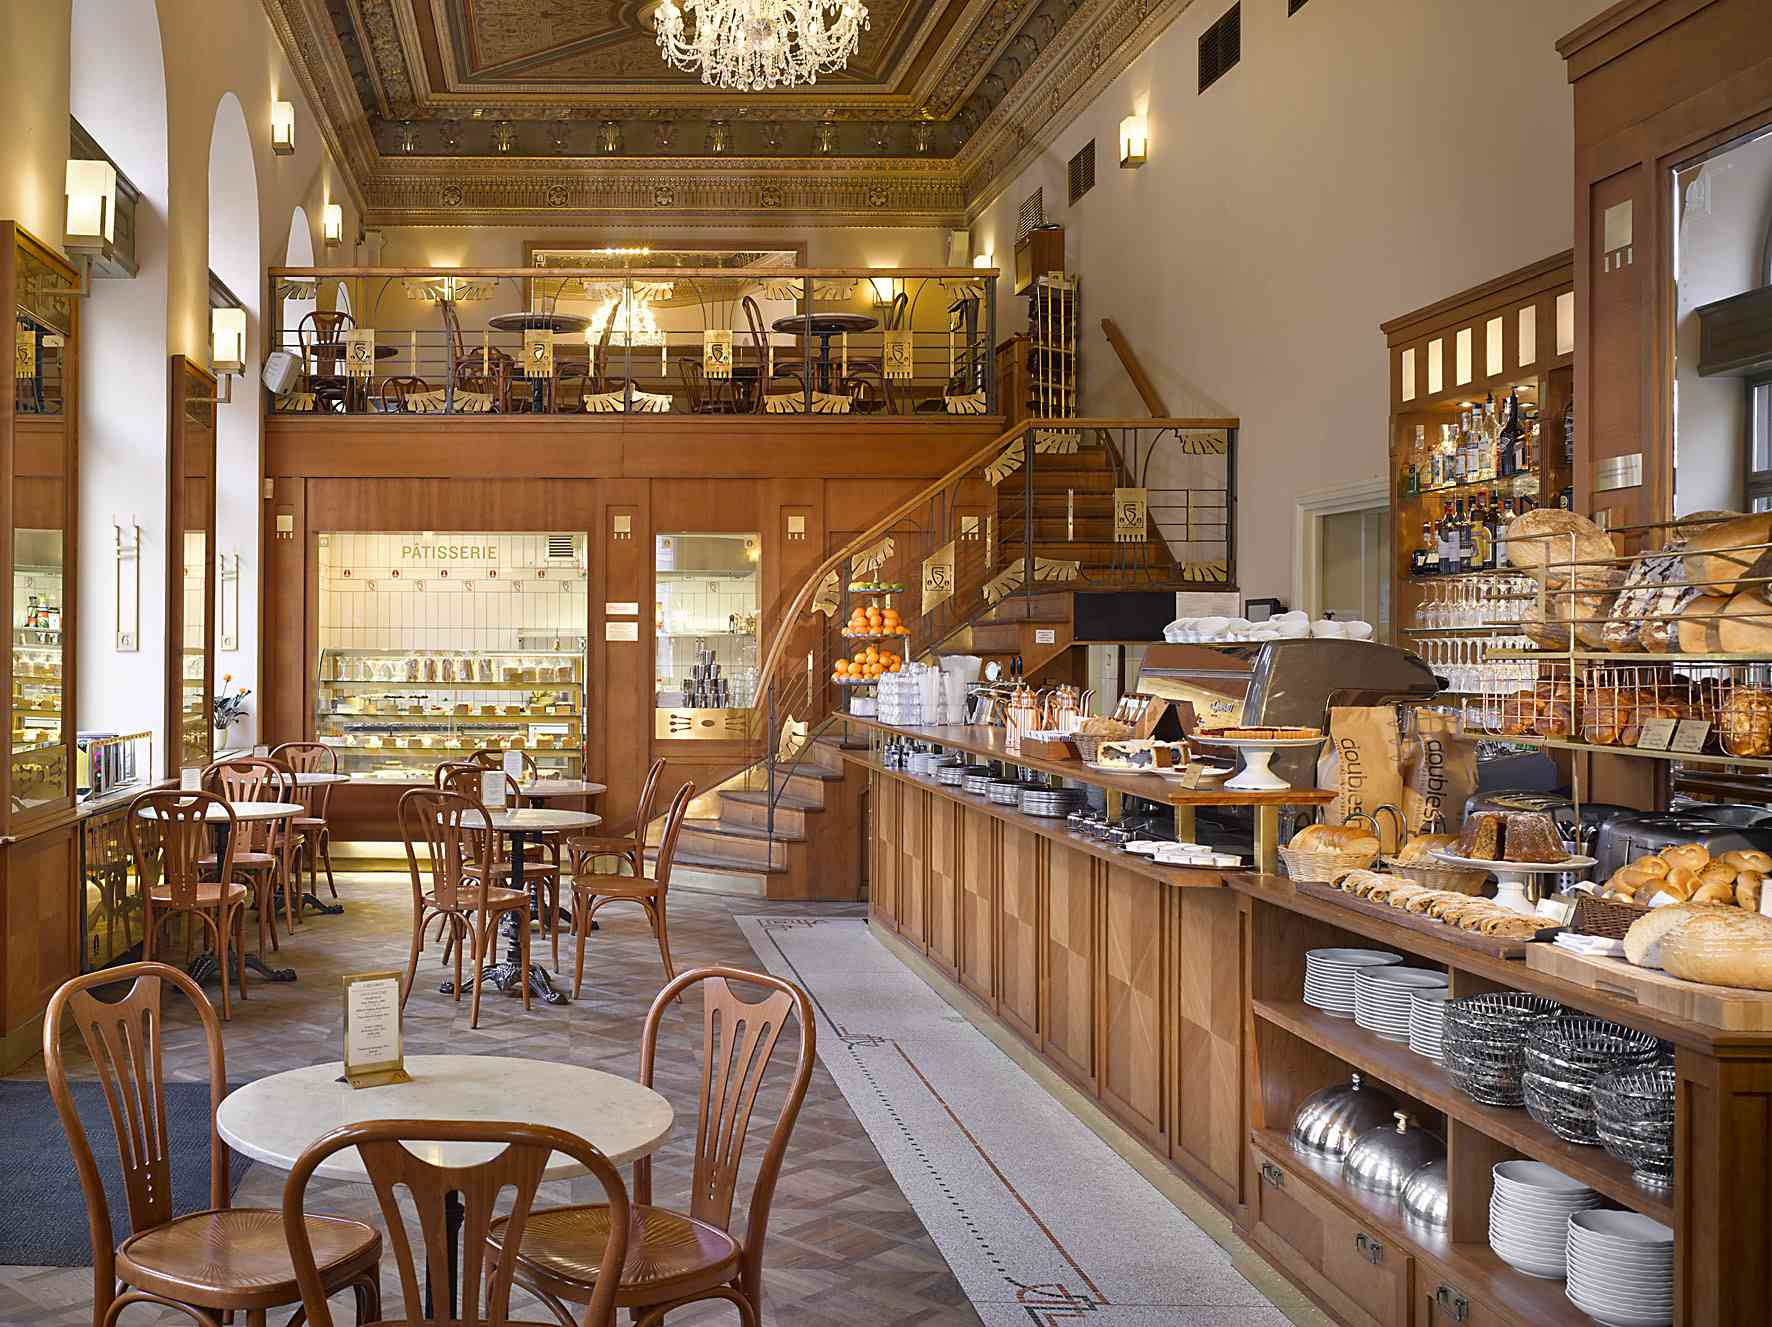 Warm wooden interior of Café savoy. The left side of the image has tables and chairs and the right side has a pastry case and the register. There are stairs in the back that lead to a lofted seating area